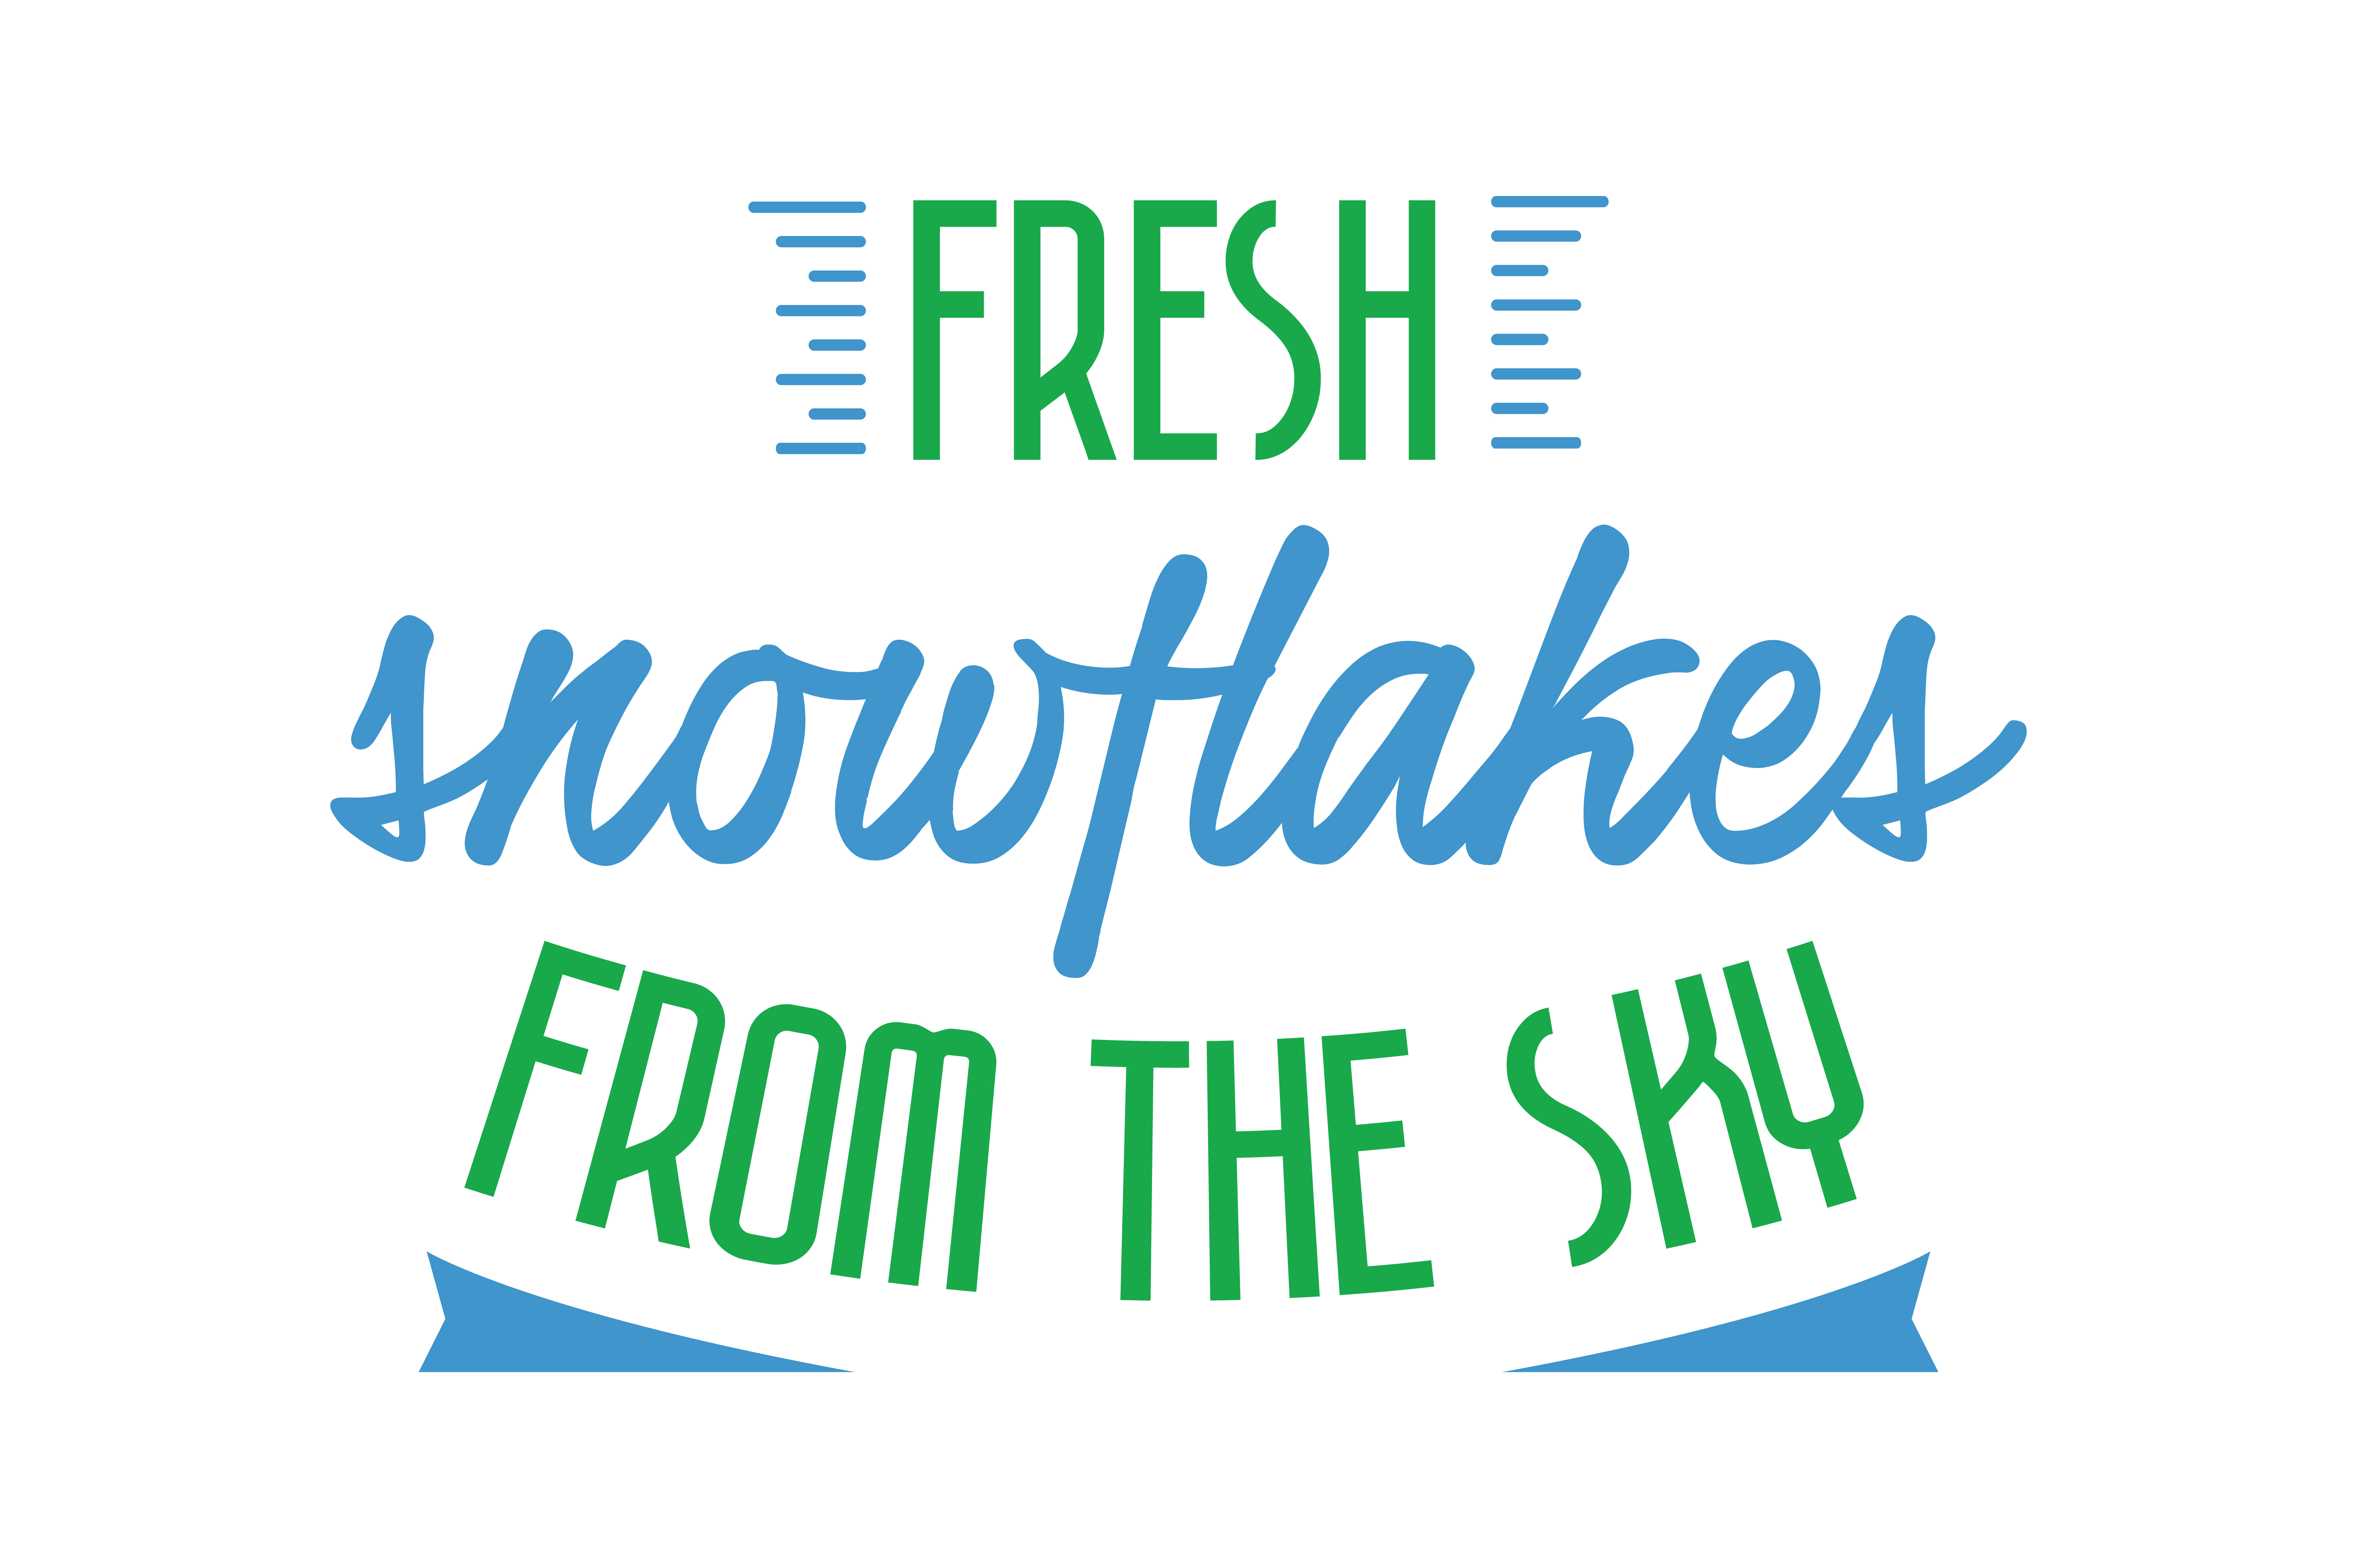 Download Free Fresh Snowflakes From The Sky Quote Svg Cut Graphic By Thelucky for Cricut Explore, Silhouette and other cutting machines.